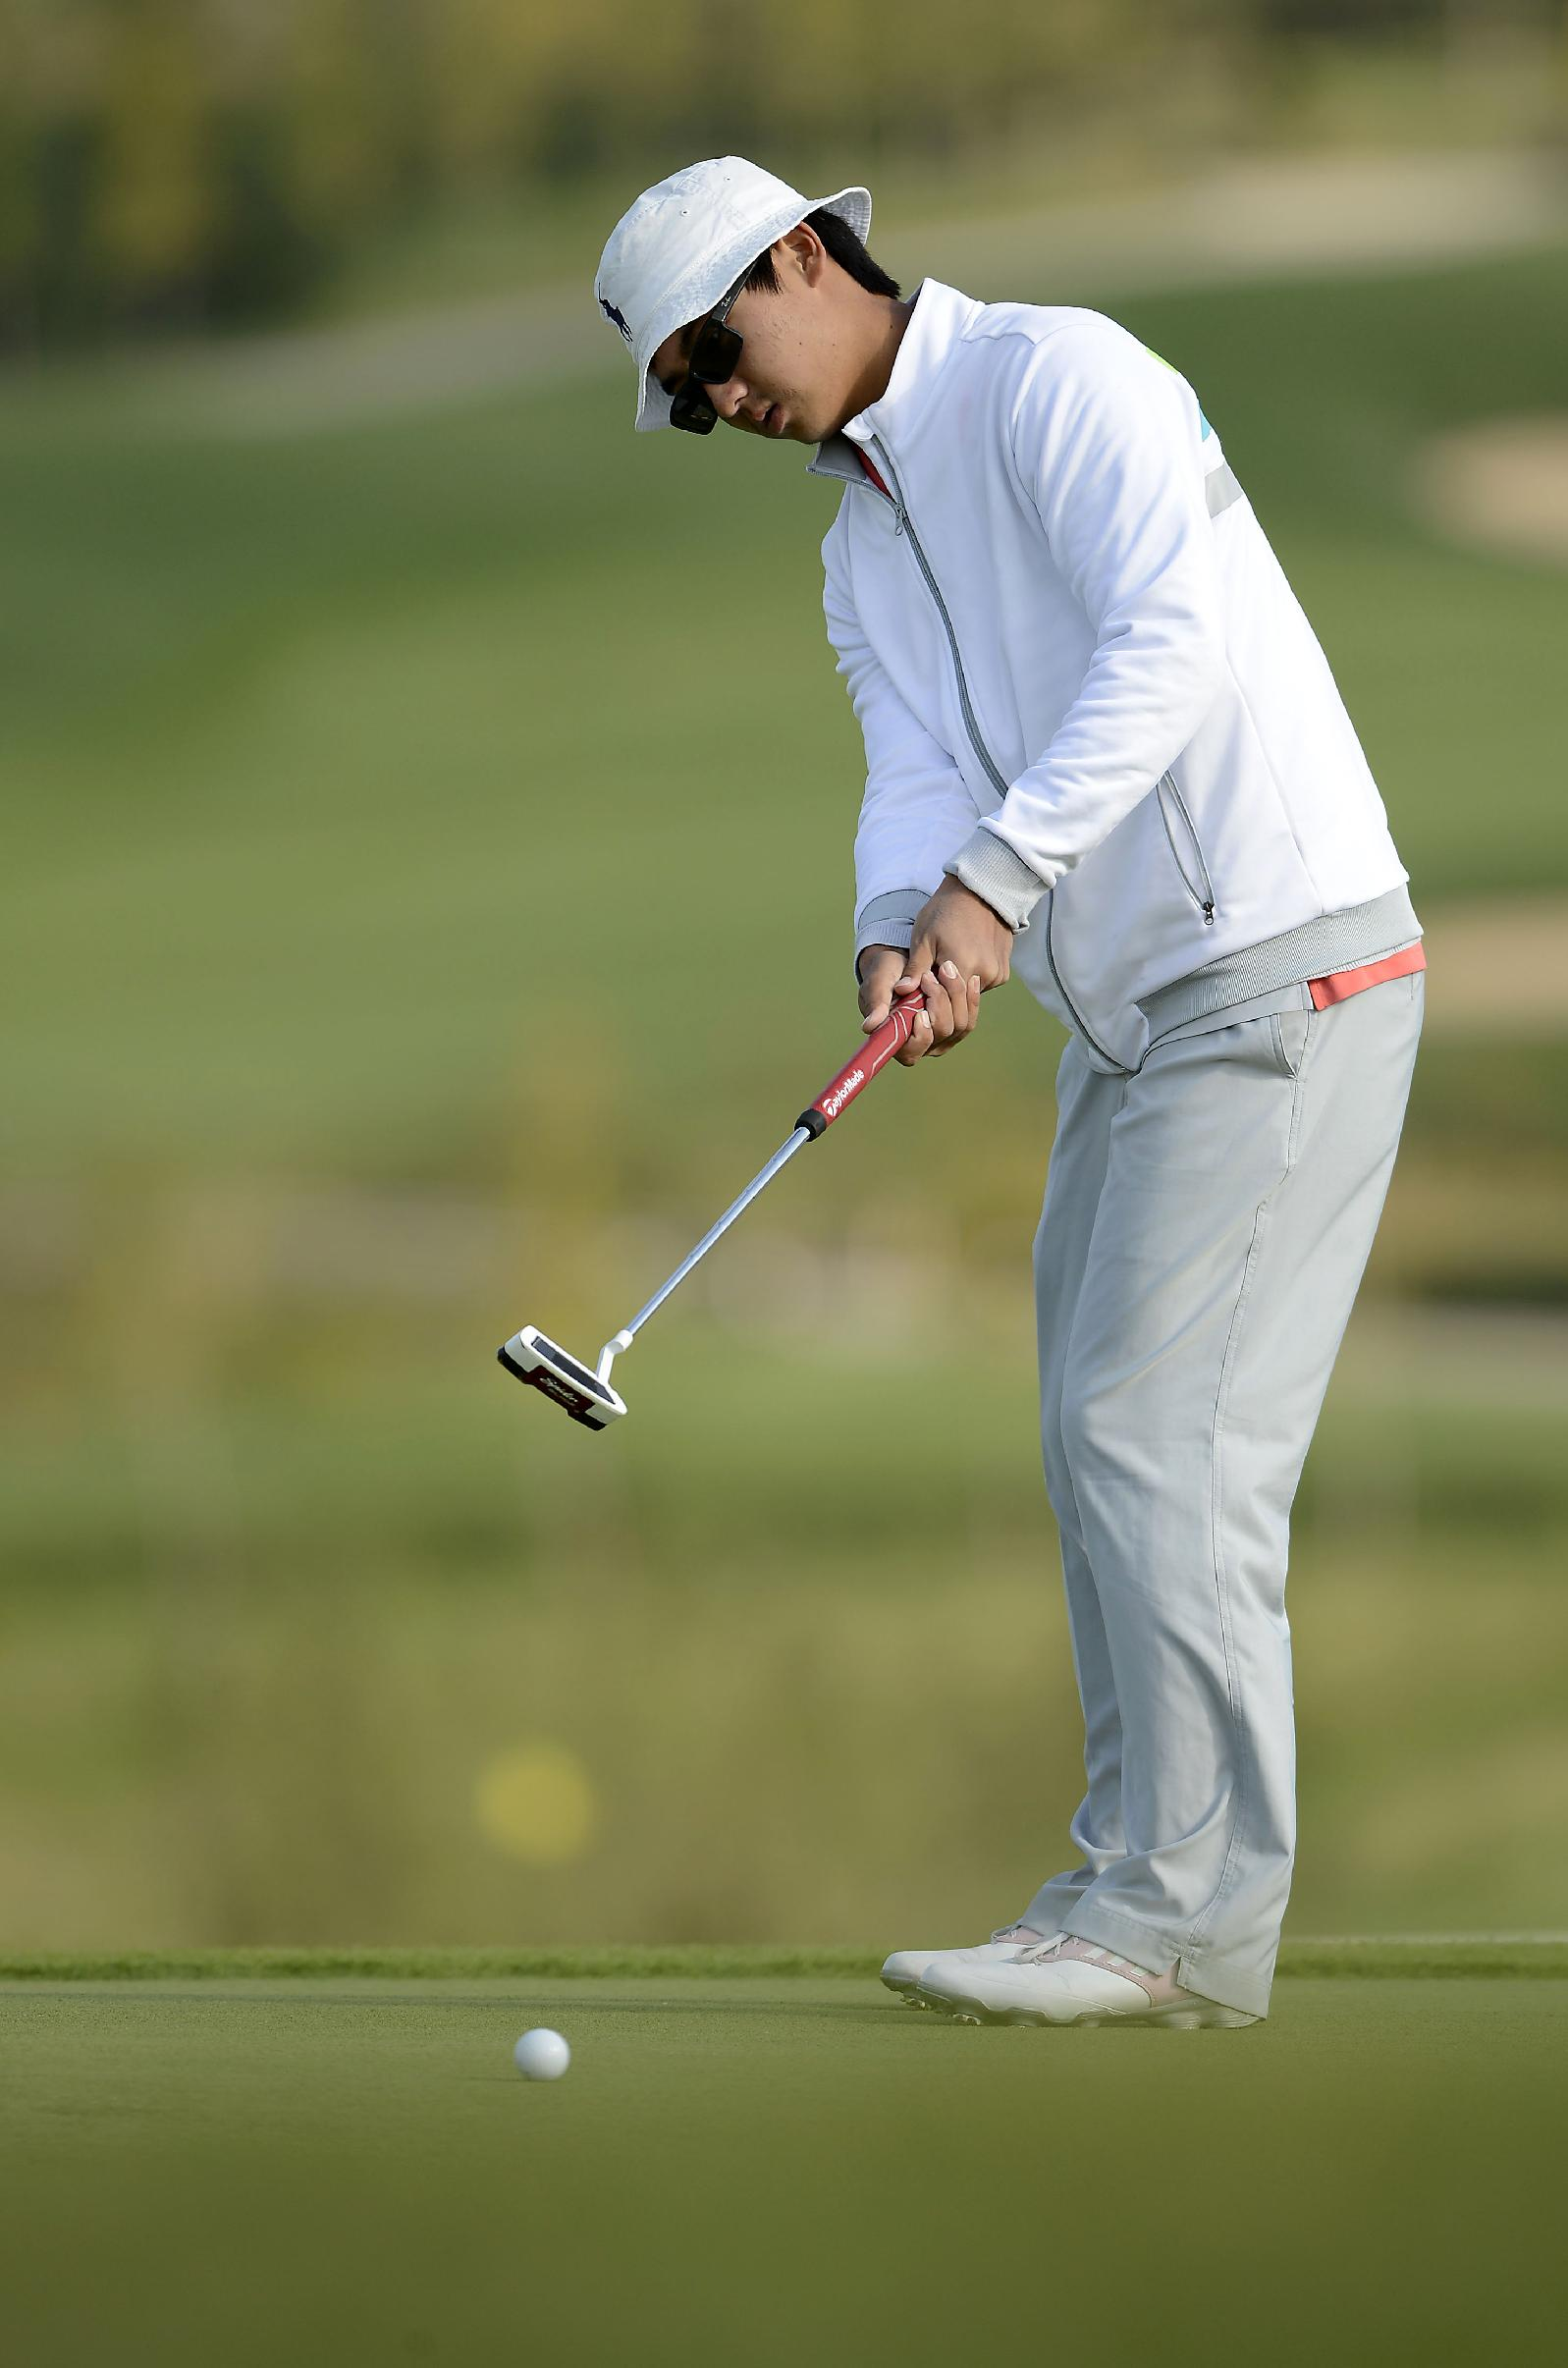 In this photo released by the Asia -Pacific Amateur Championship, Dou Zecheng of China putts during round one of the Asia -Pacific Amateur Championship golf tournament at Nanshan International Golf Club, Garden Course, in Longkou City, China on Thursday, Oct. 24, 2013